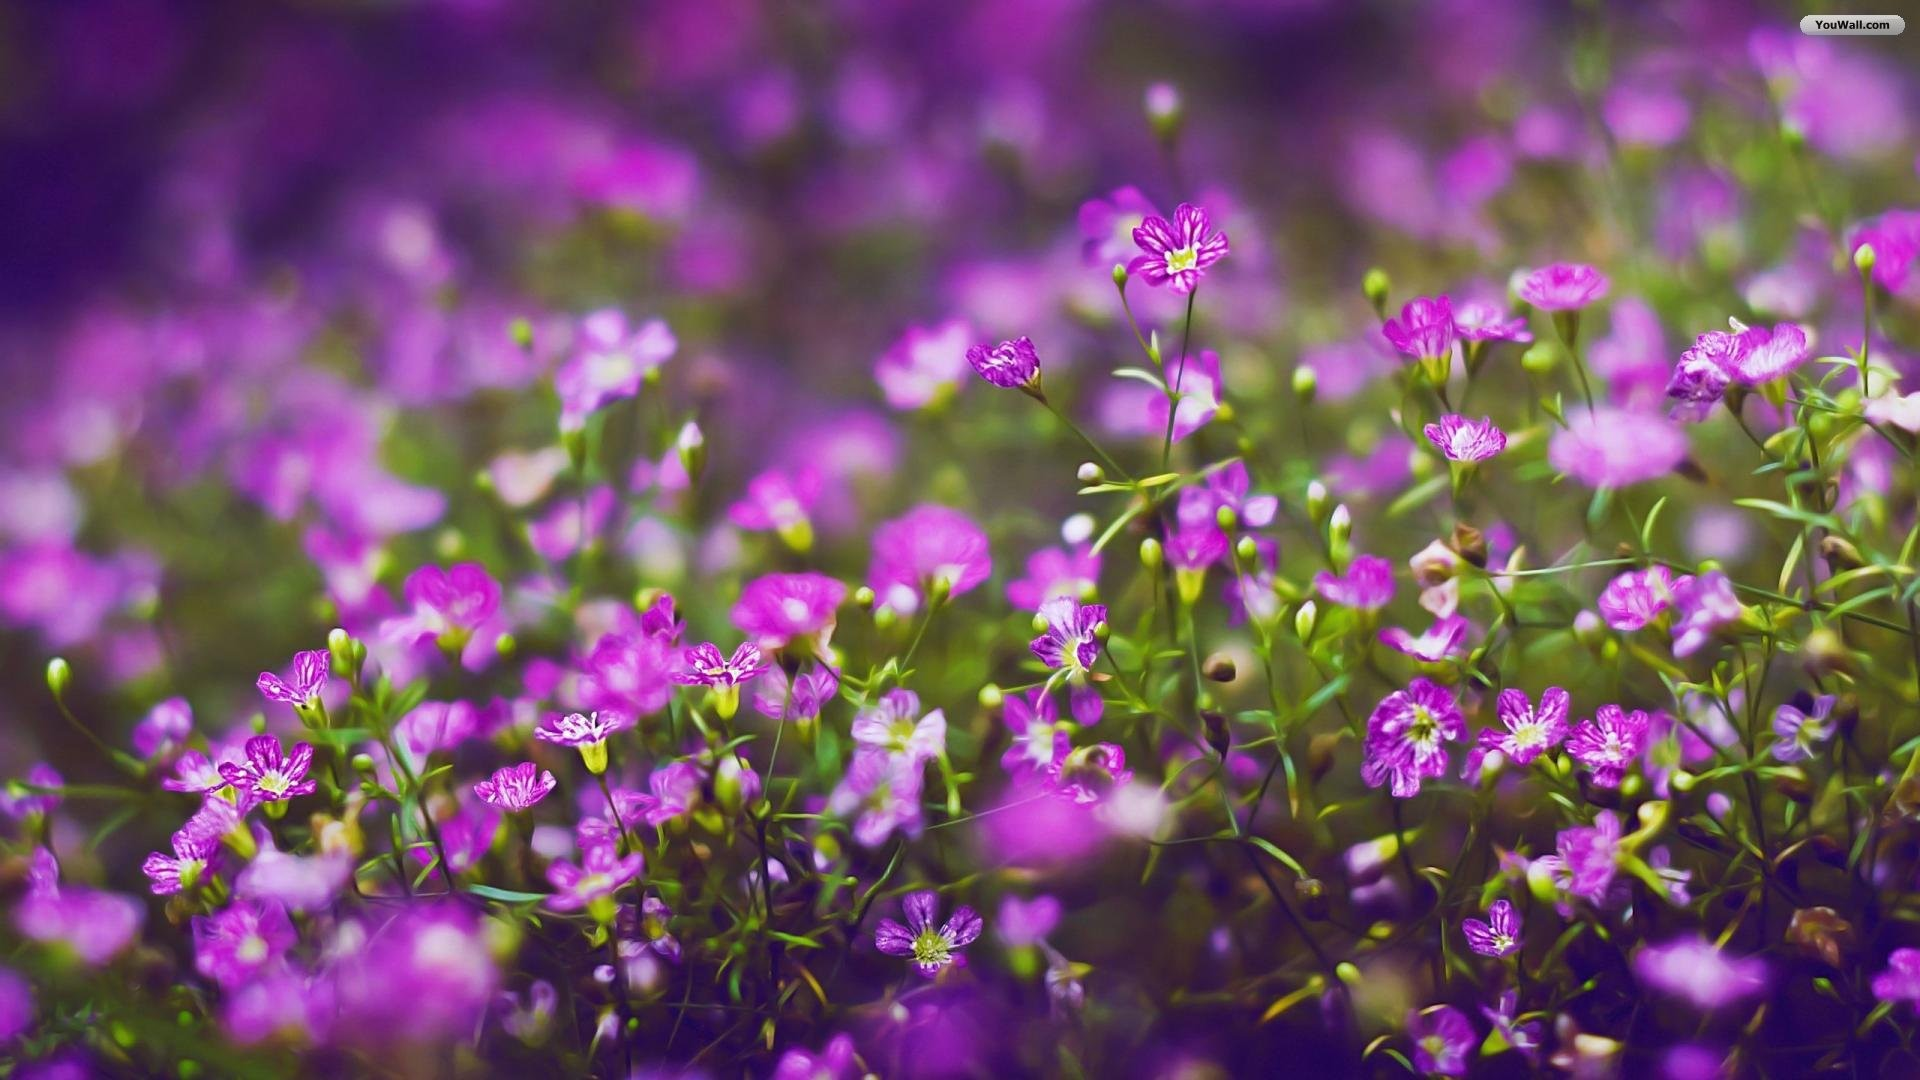 1920x1080 of 18 Beautiful Lavender Purple Flowers HD Wallpaper For Desktop